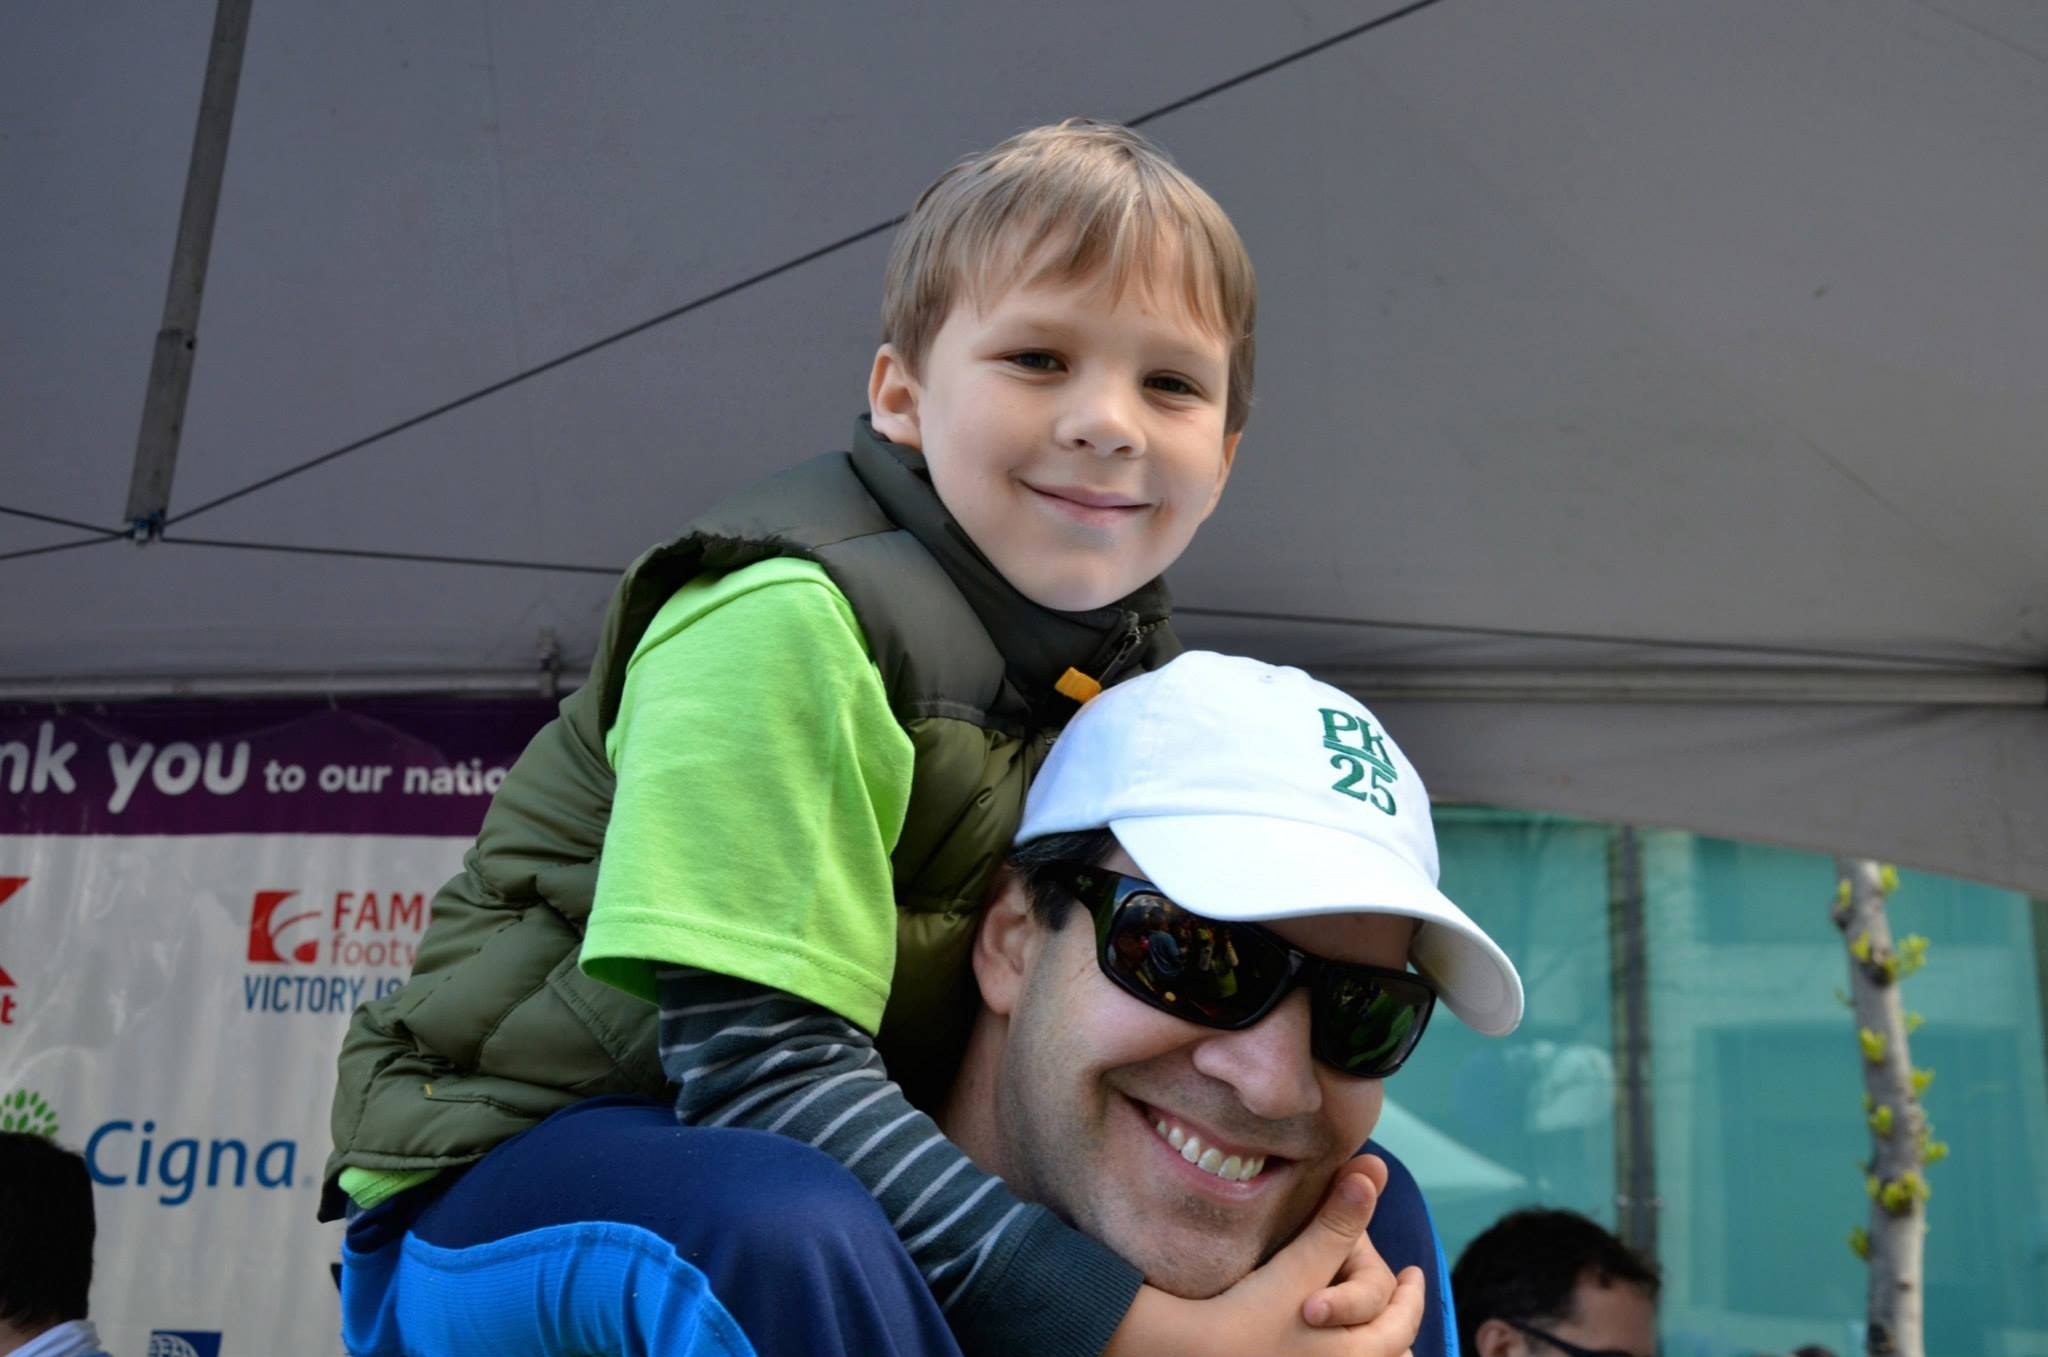 tucker-and-andrew-gongaware-at-the-2015-march-for-babies-walk_16710163247_o.jpg